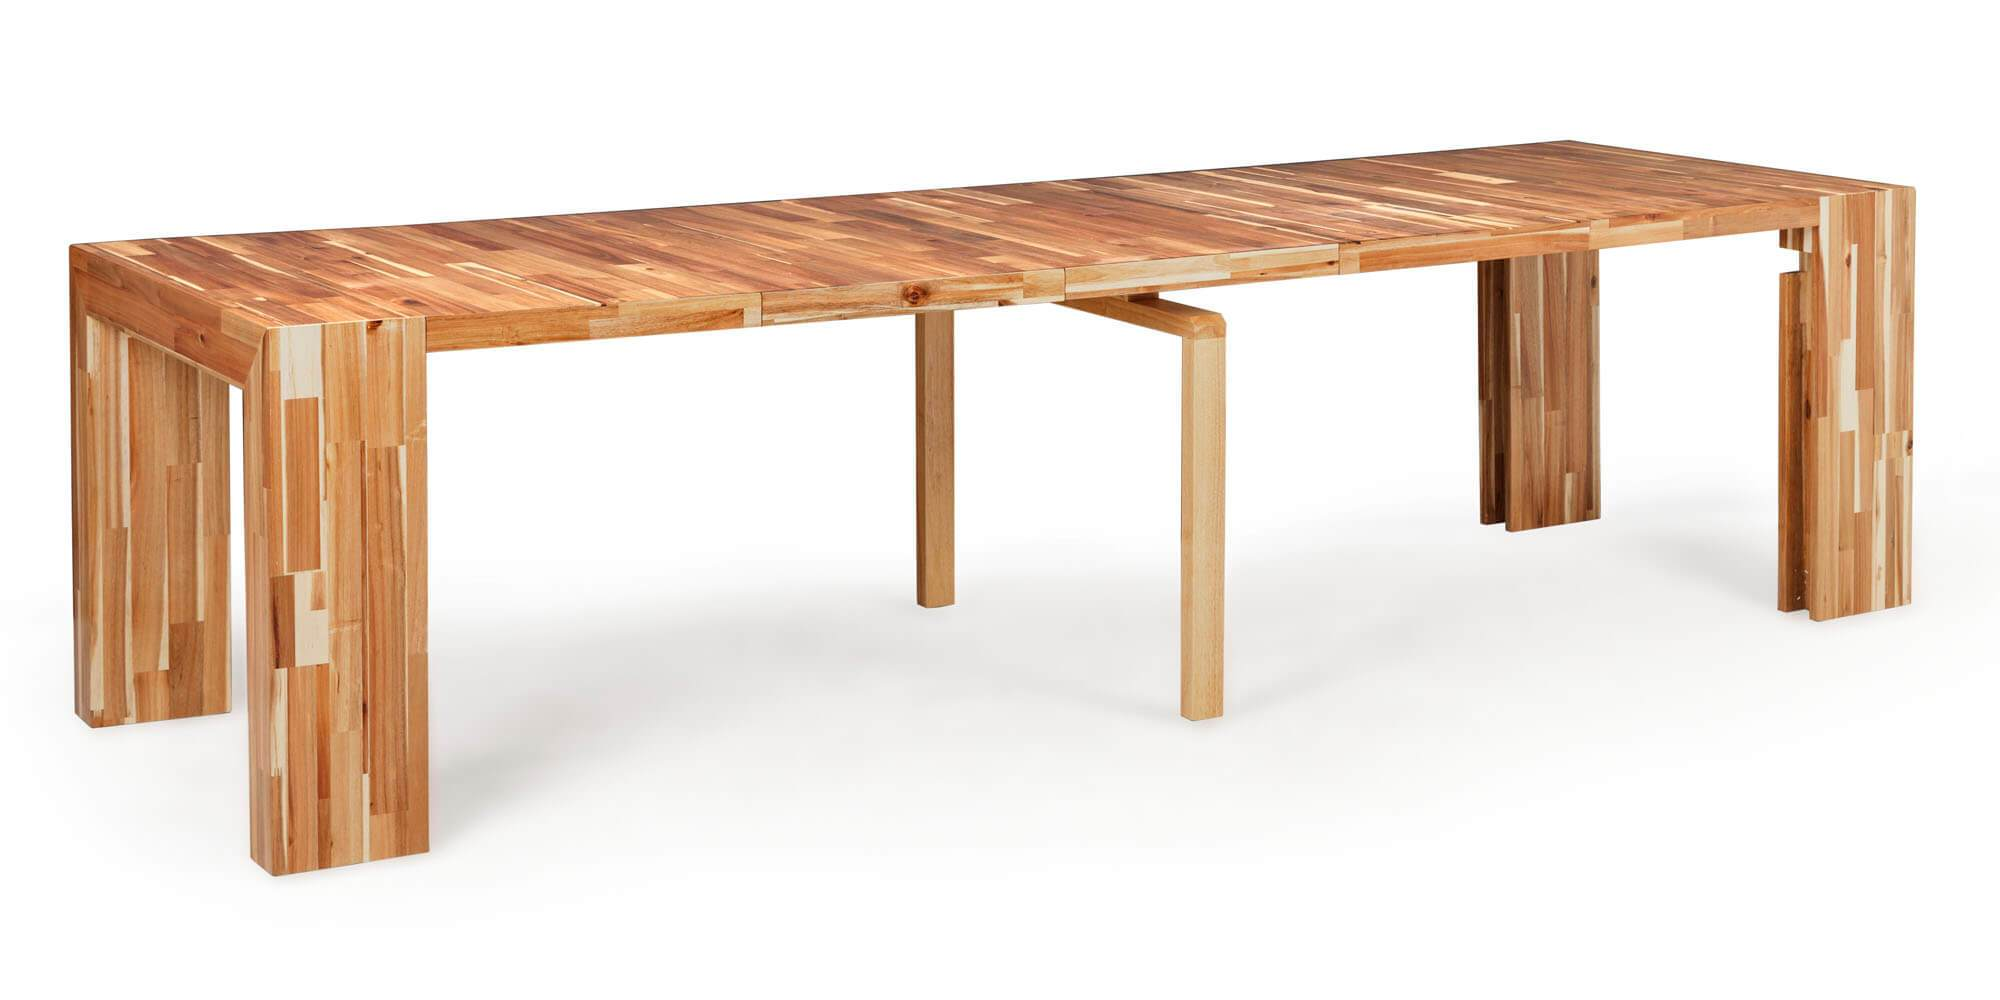 The Dining Set 2.0 + Natural Acacia